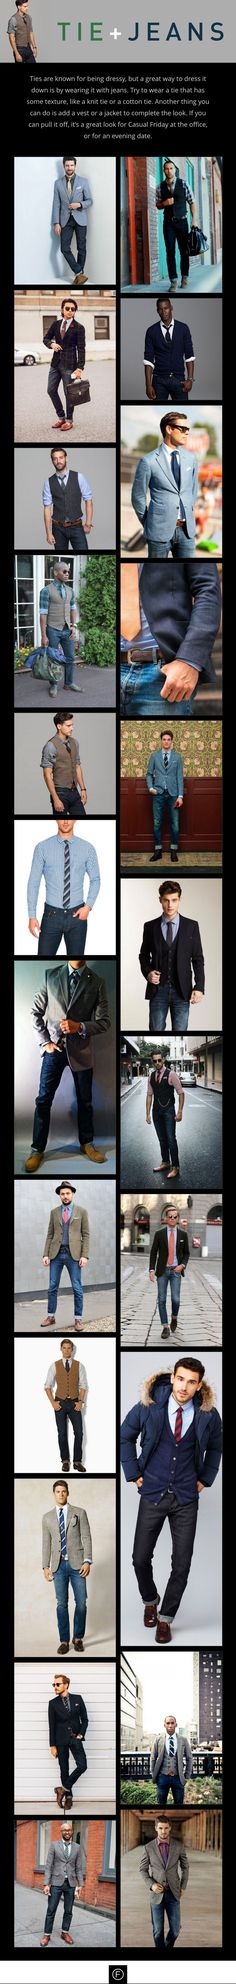 Ties are known for being dressy, but a great way to dress it down is by wearing it with jeans. Try to wear a tie that has some texture, like a knit tie or a cotton tie. Another thing you can do is add a vest or a jacket to complete the look. http://famousoutfits.com/collections/tie-jeans/